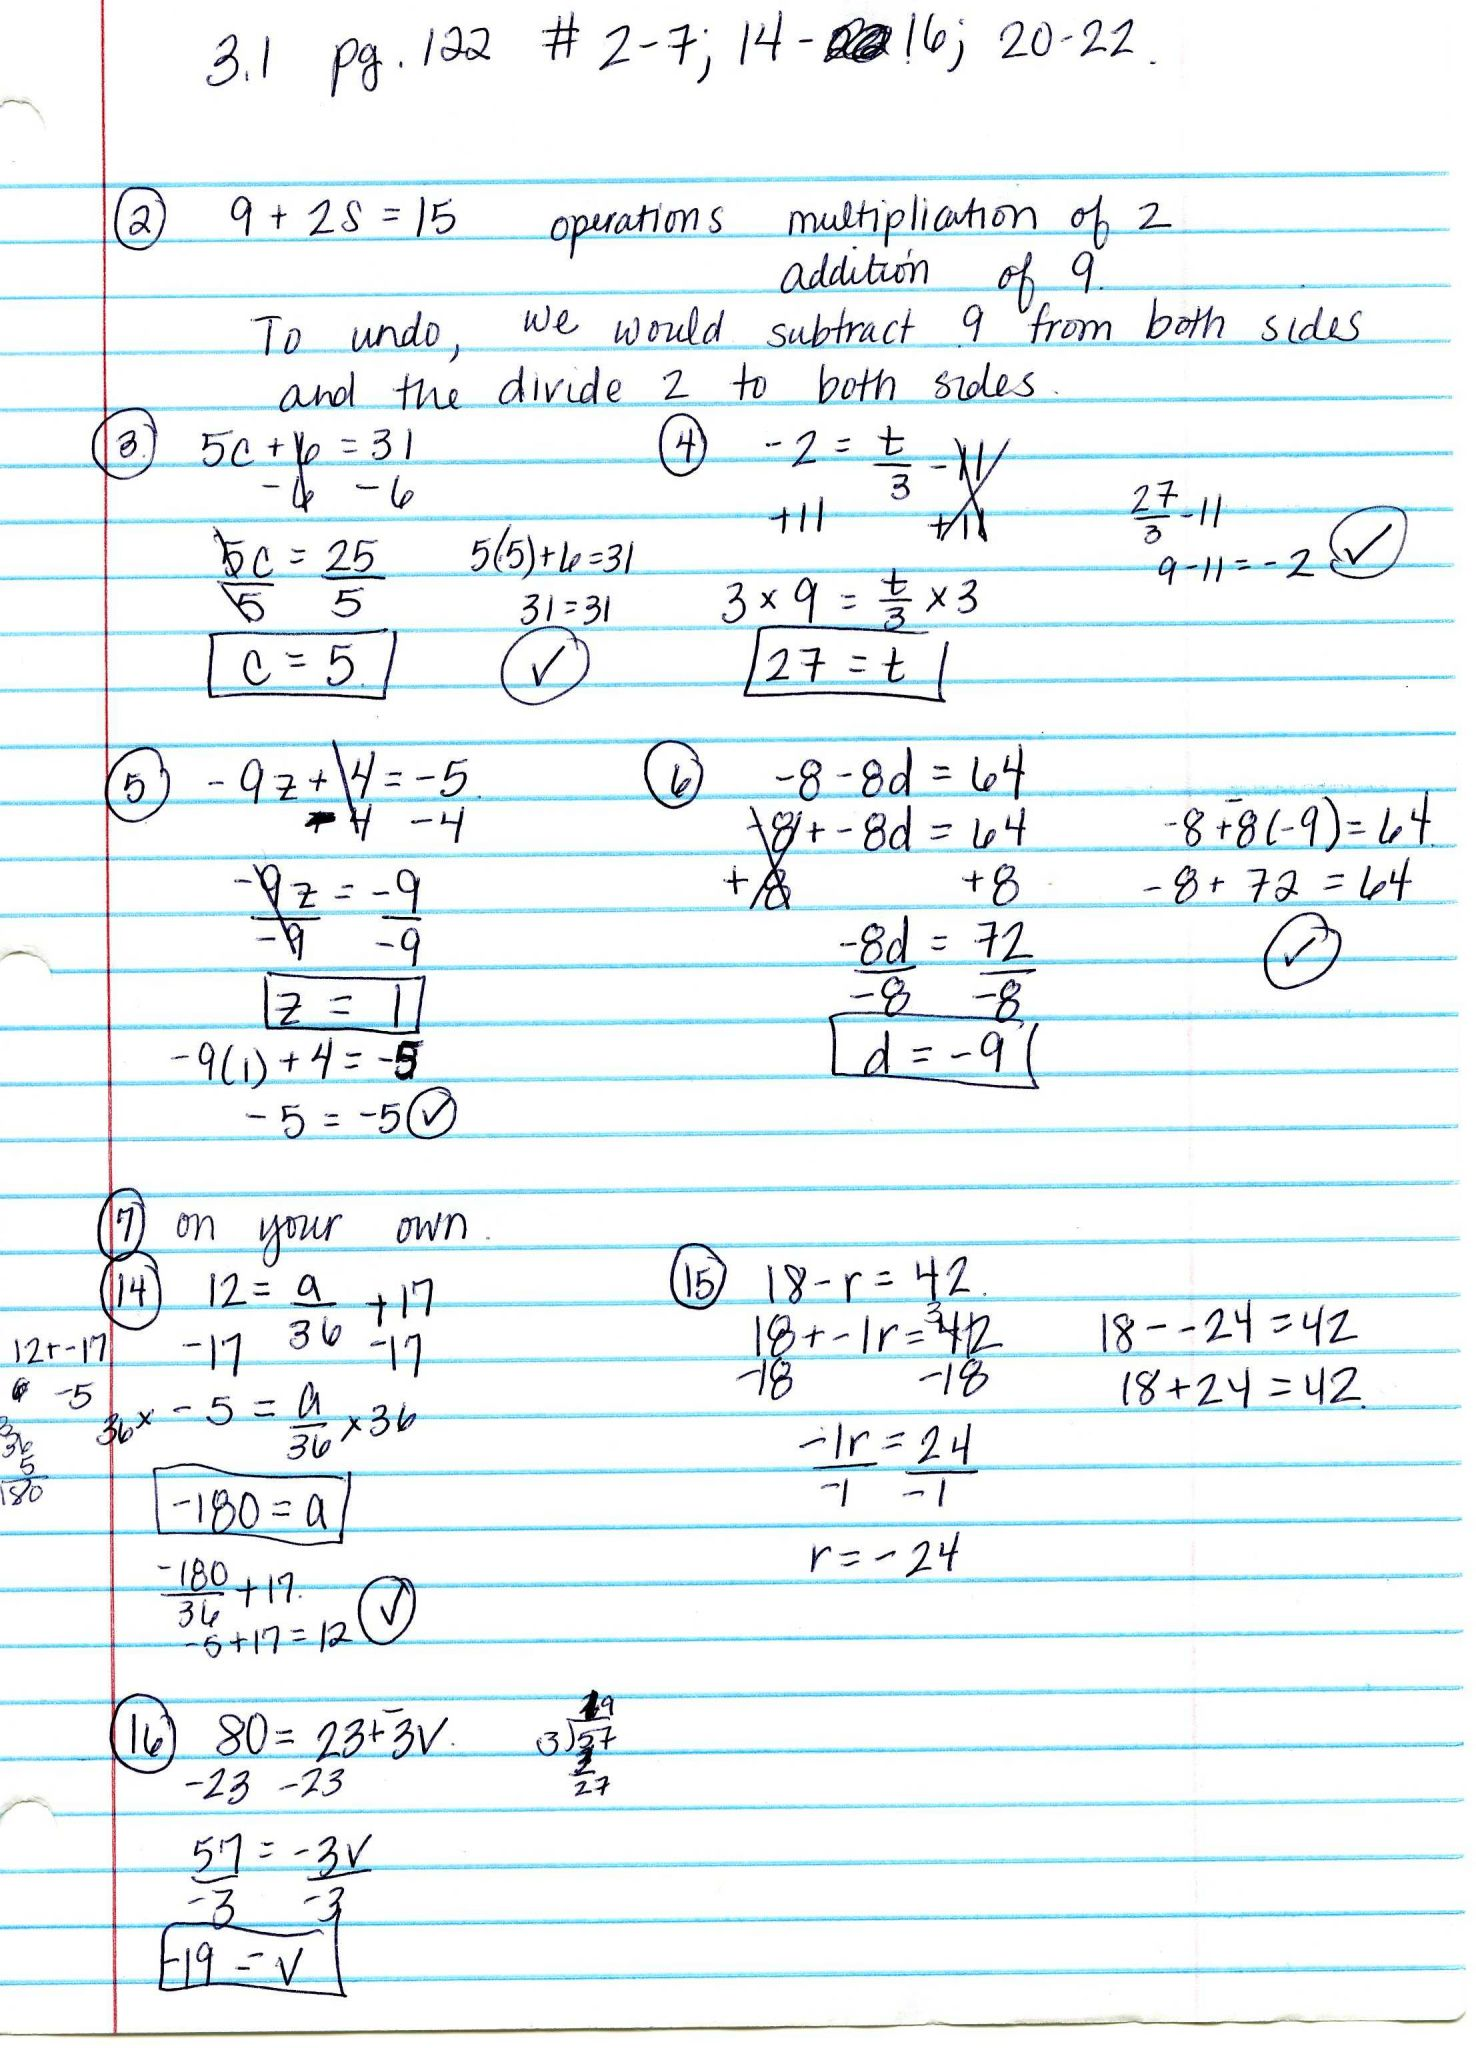 Solving Linear Equations Practice Worksheet together with Pre Algebra